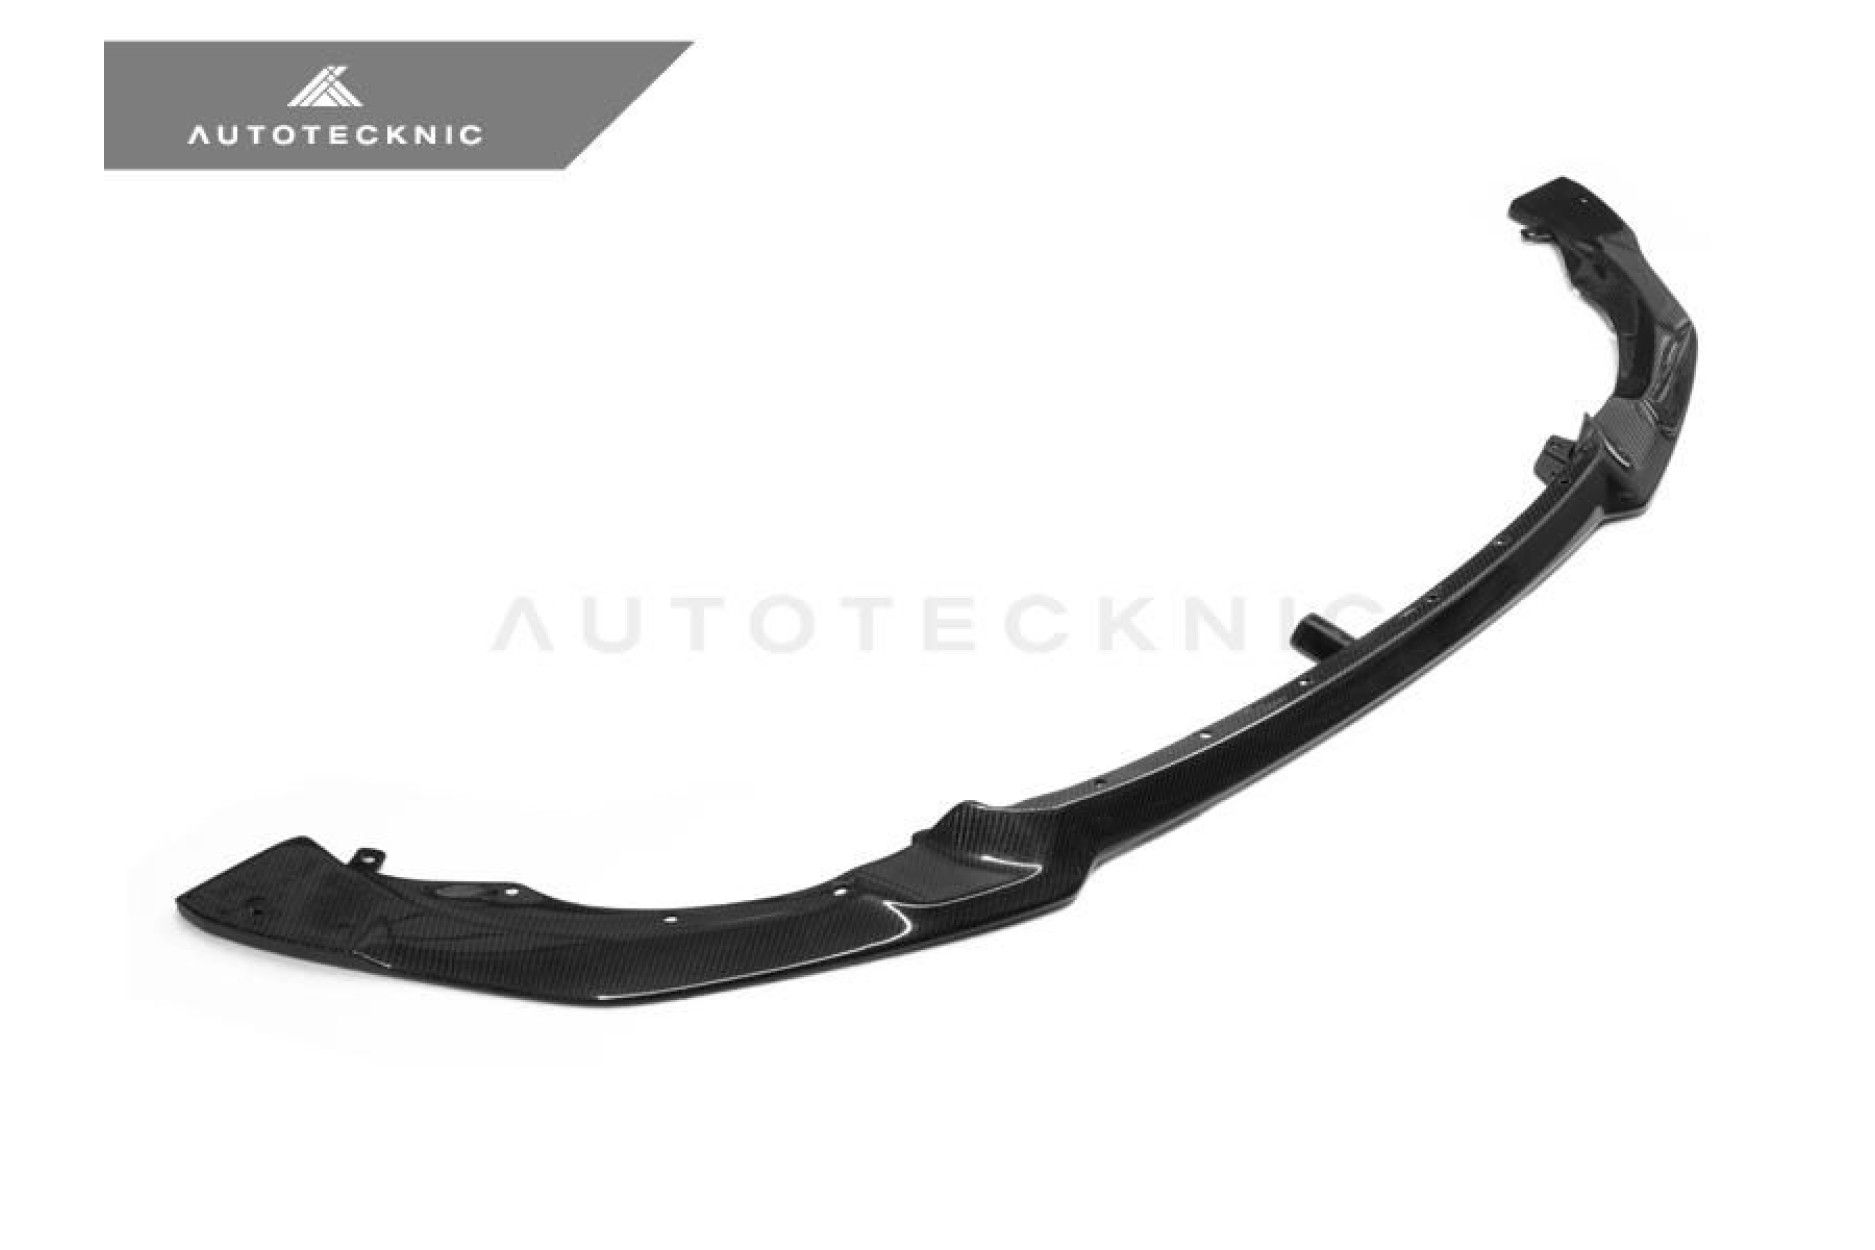 AutoTecknic Carbon Competition Frontlippe für F80 M3 | F82/F83 M4